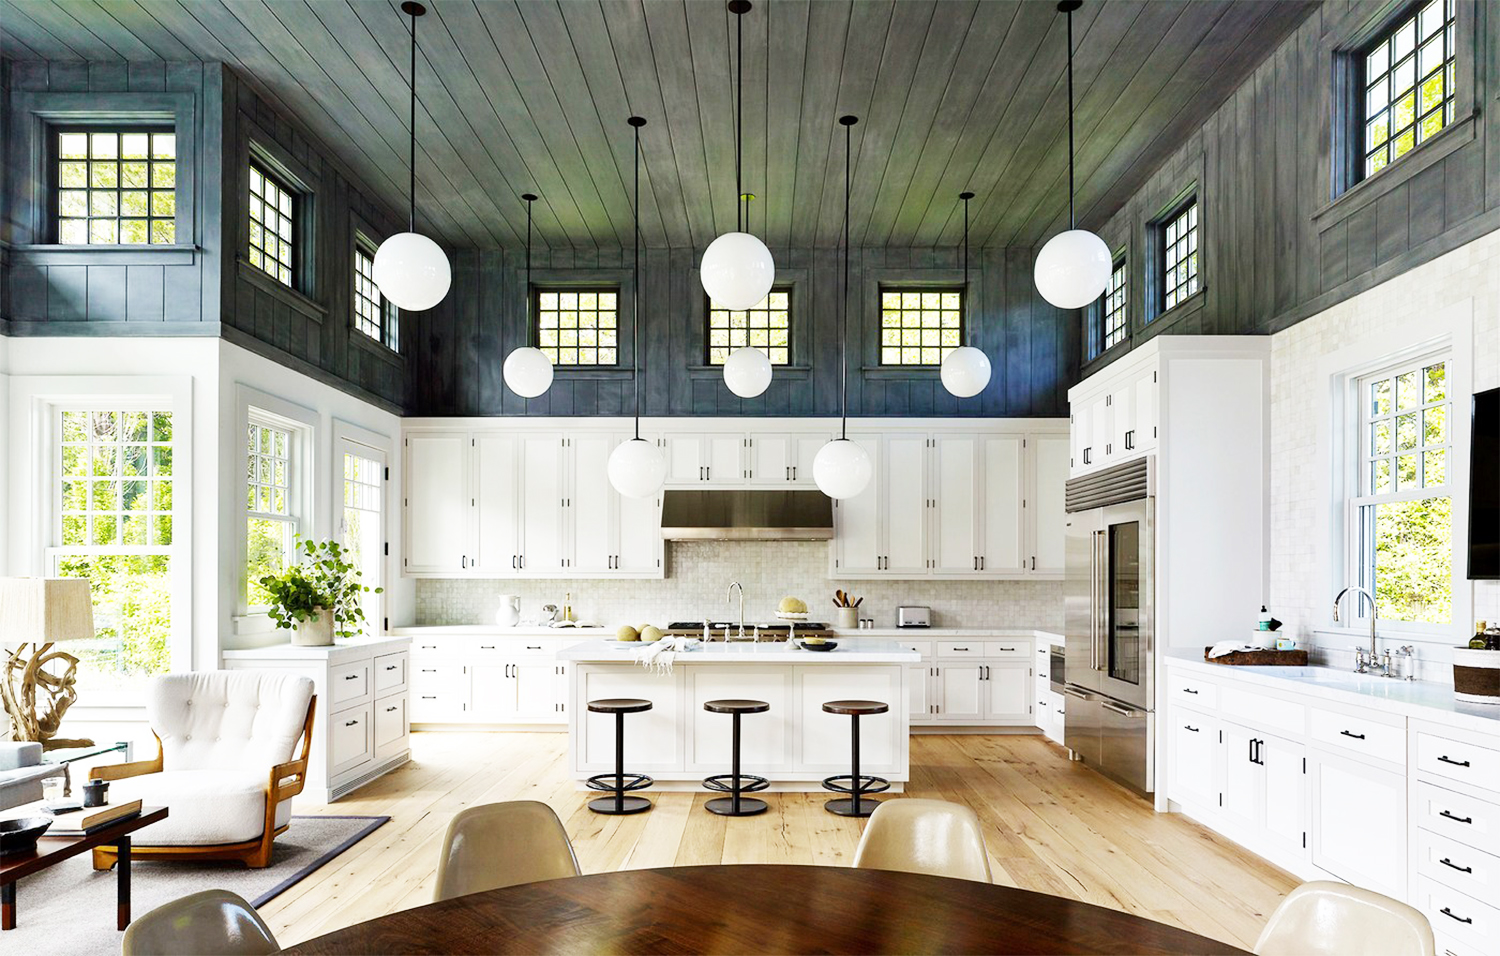 Hamptons Home With A Modern Twist COCOCOZY - Hamptons kitchen design